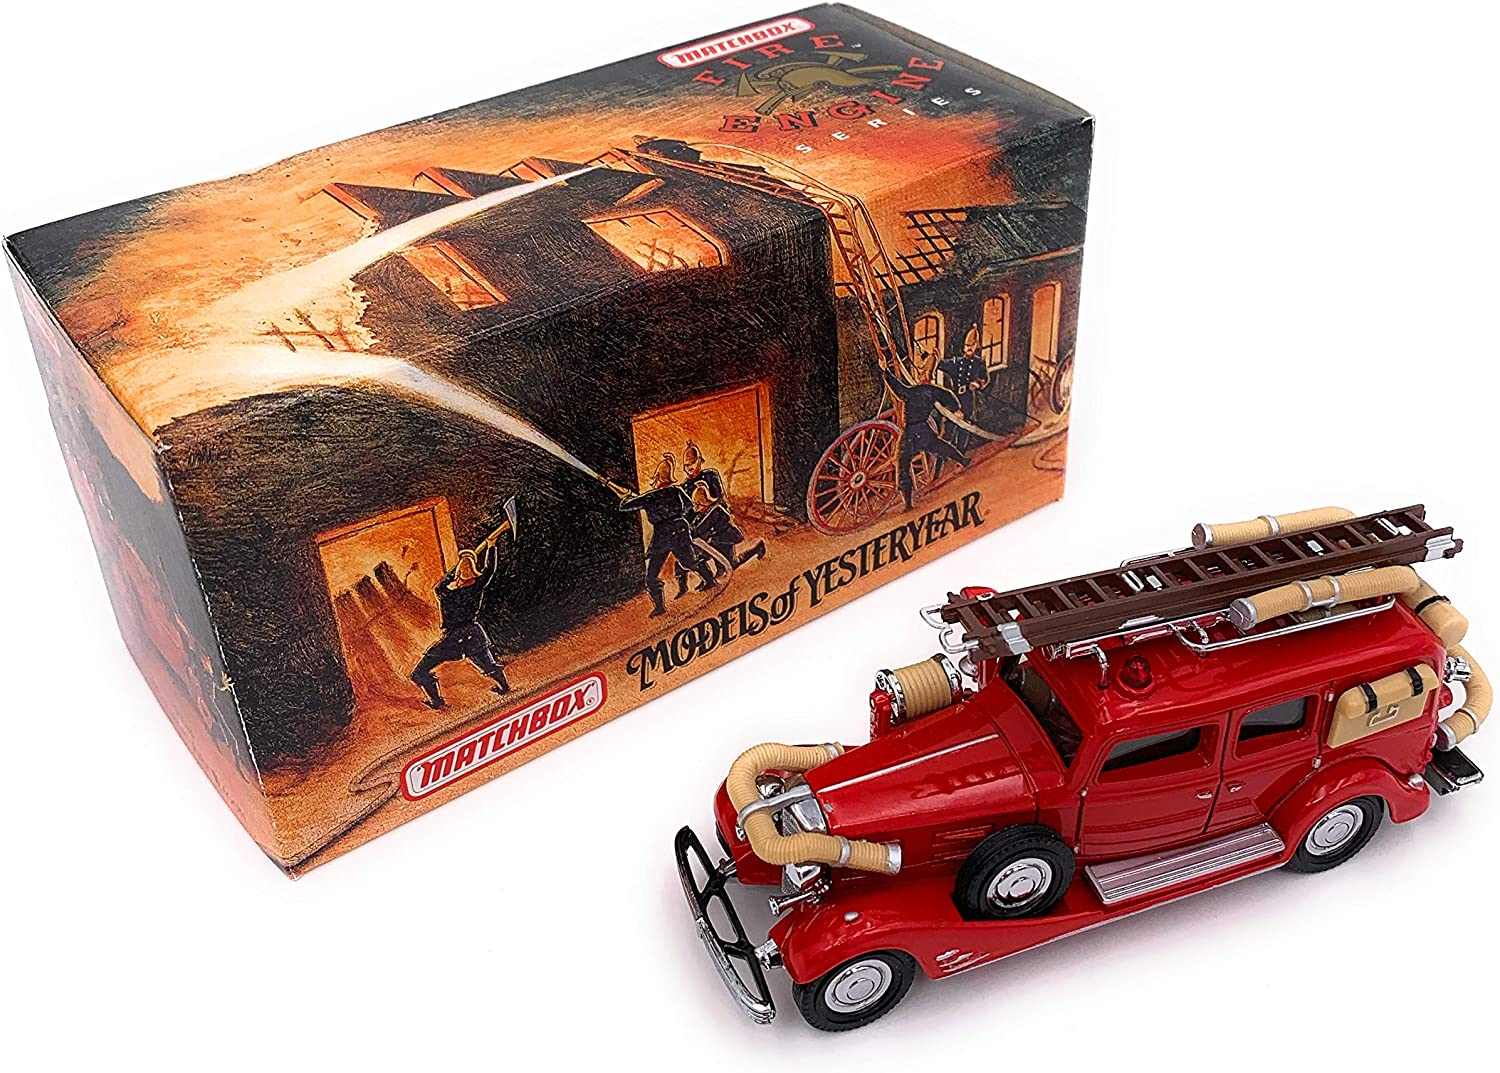 de moda Matchbox 1933 Cadillac Fire Wagon Models of of of Yesteryear Series by Matchbox  calidad fantástica